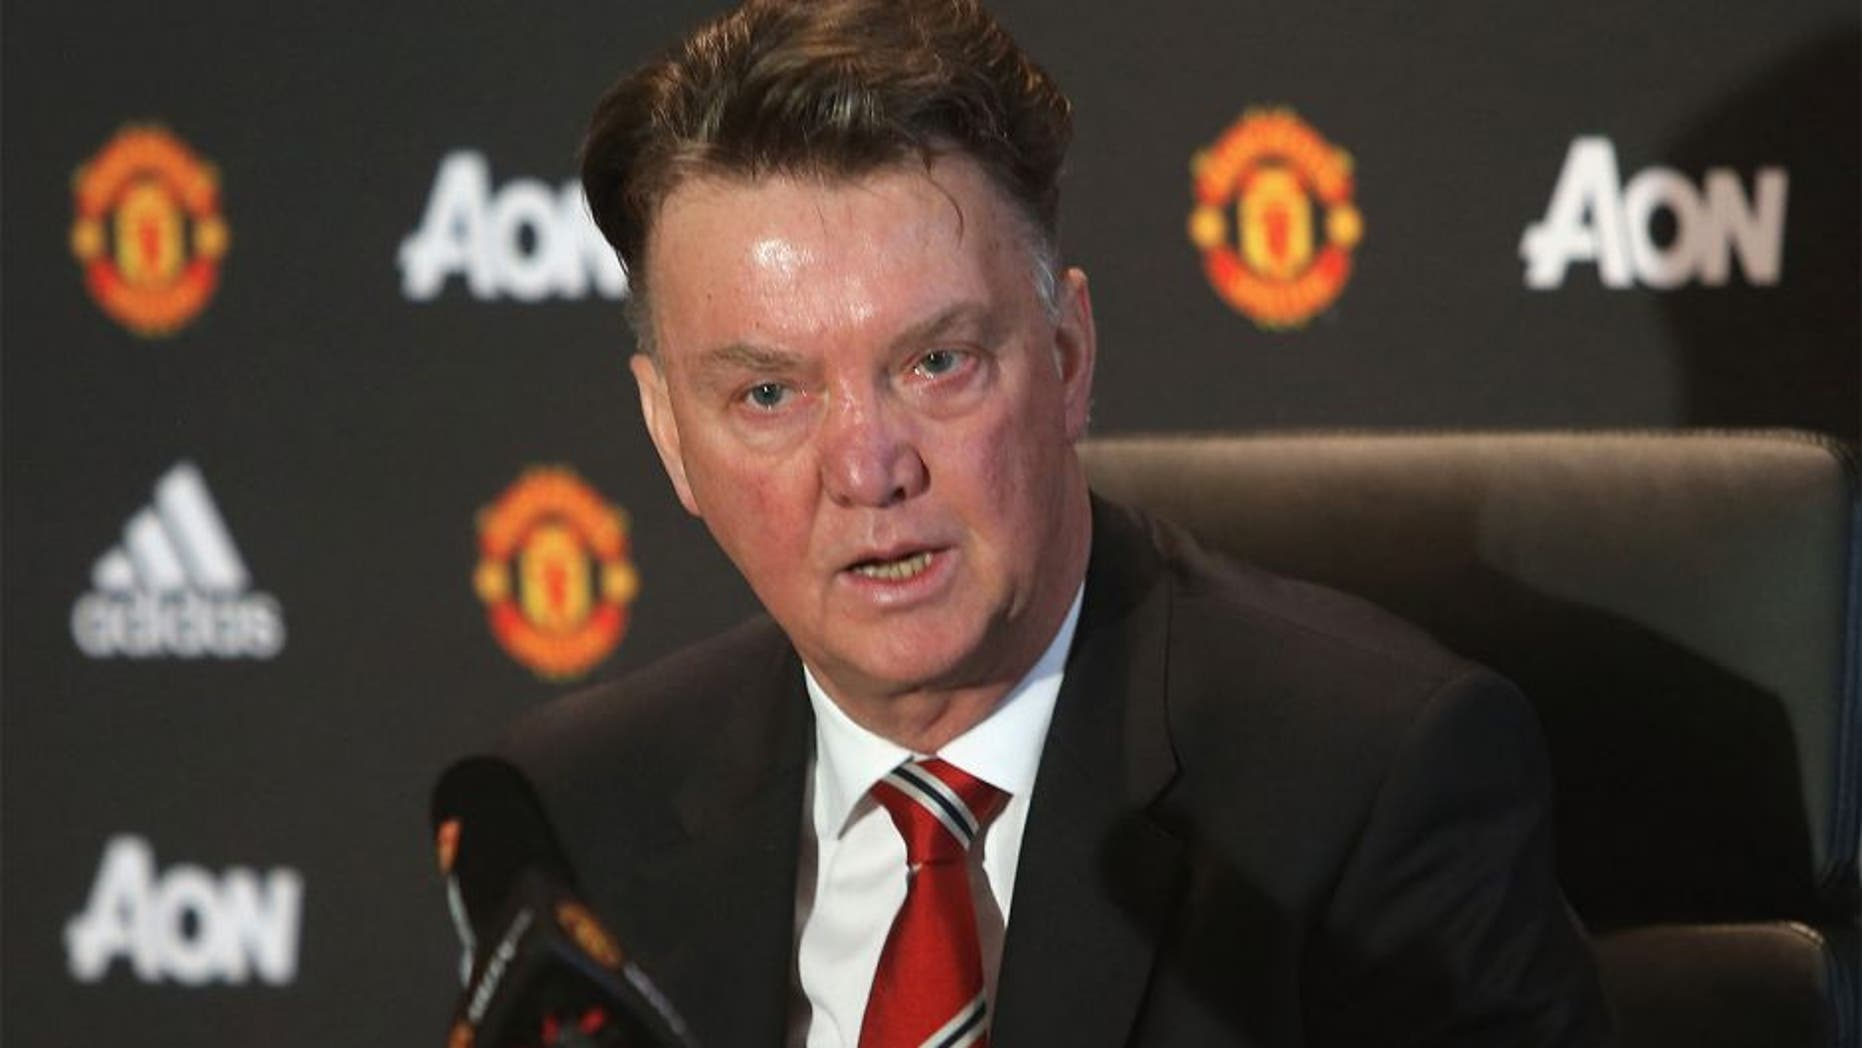 MANCHESTER, ENGLAND - JANUARY 22: (EXCLUSIVE COVERAGE) Manager Louis van Gaal of Manchester United speaks during a press conference at Aon Training Complex on January 22, 2016 in Manchester, England. (Photo by John Peters/Man Utd via Getty Images)